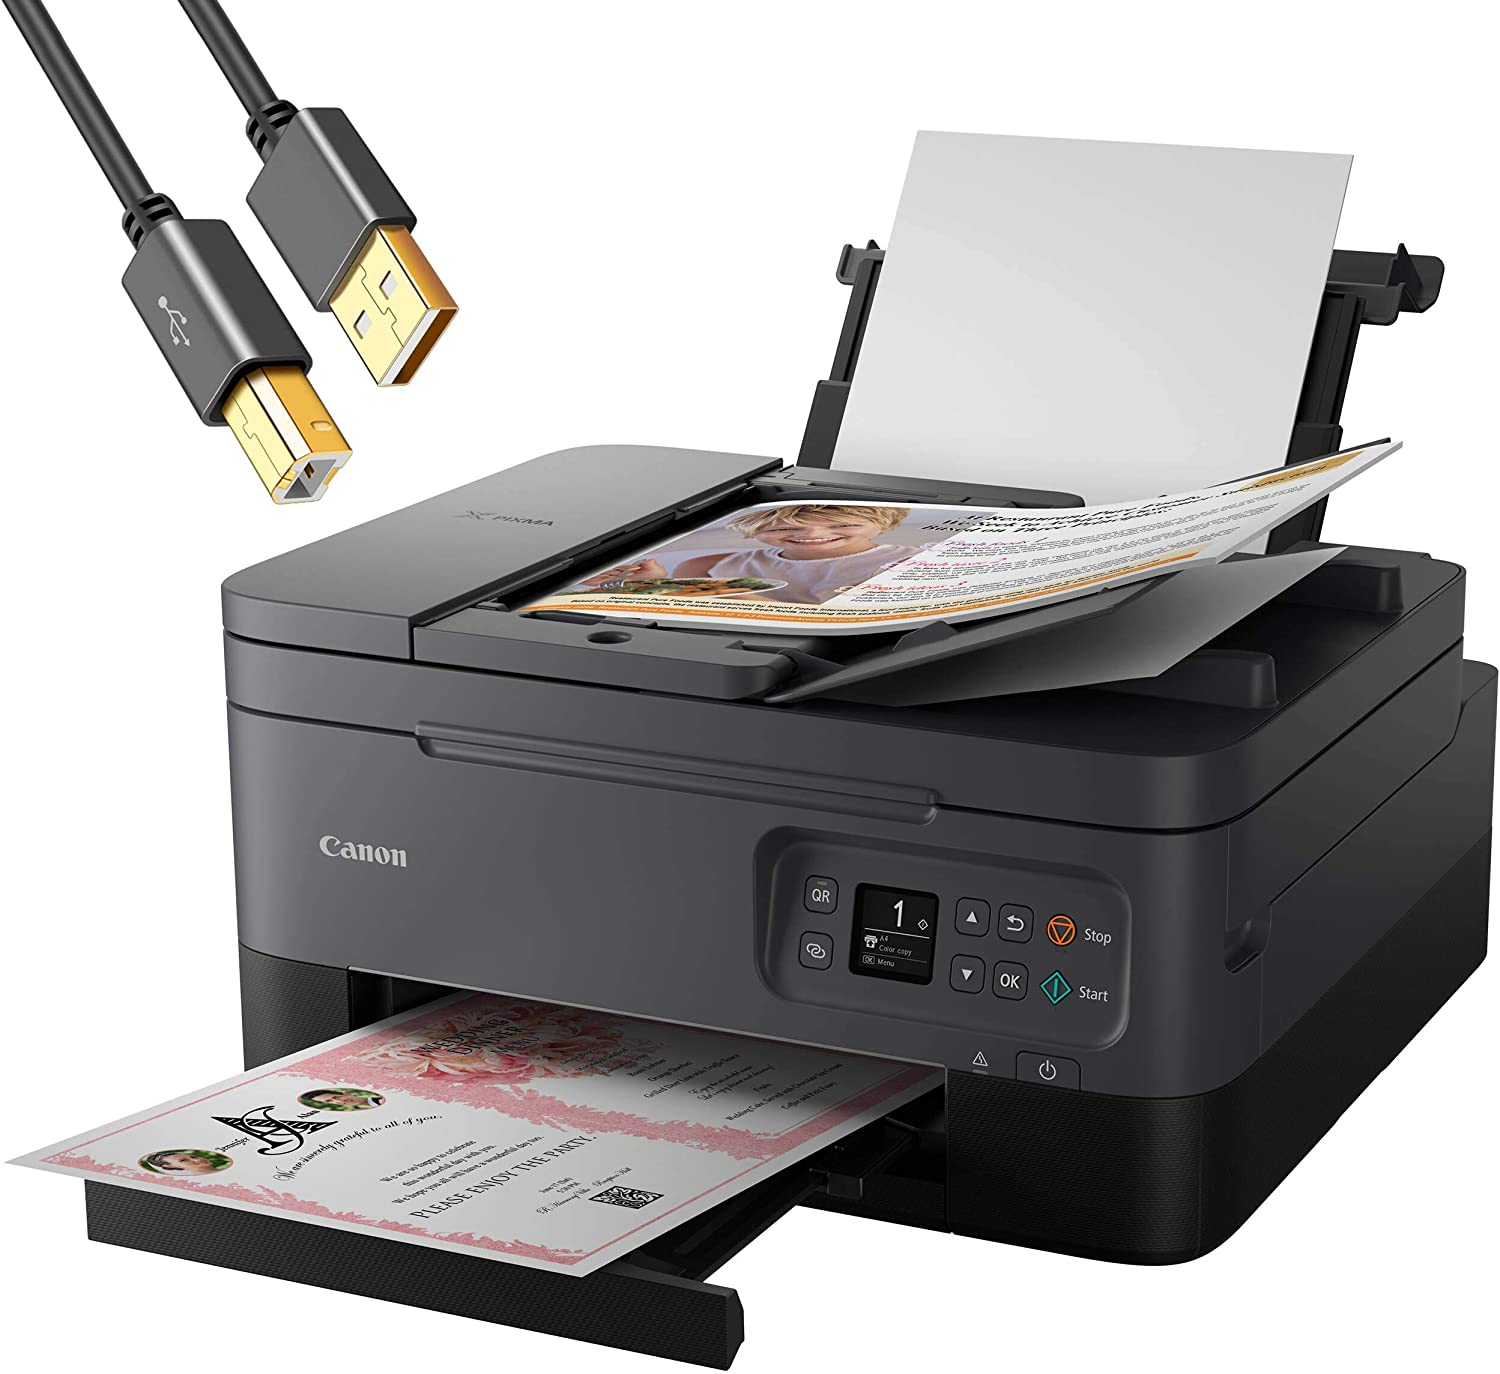 Canon PIXMA TR 7000 Series All-in-One Color Wireless Inkjet Printer Home Office- Black - Print Copy Scan- Auto 2-Sided Print, 1.44